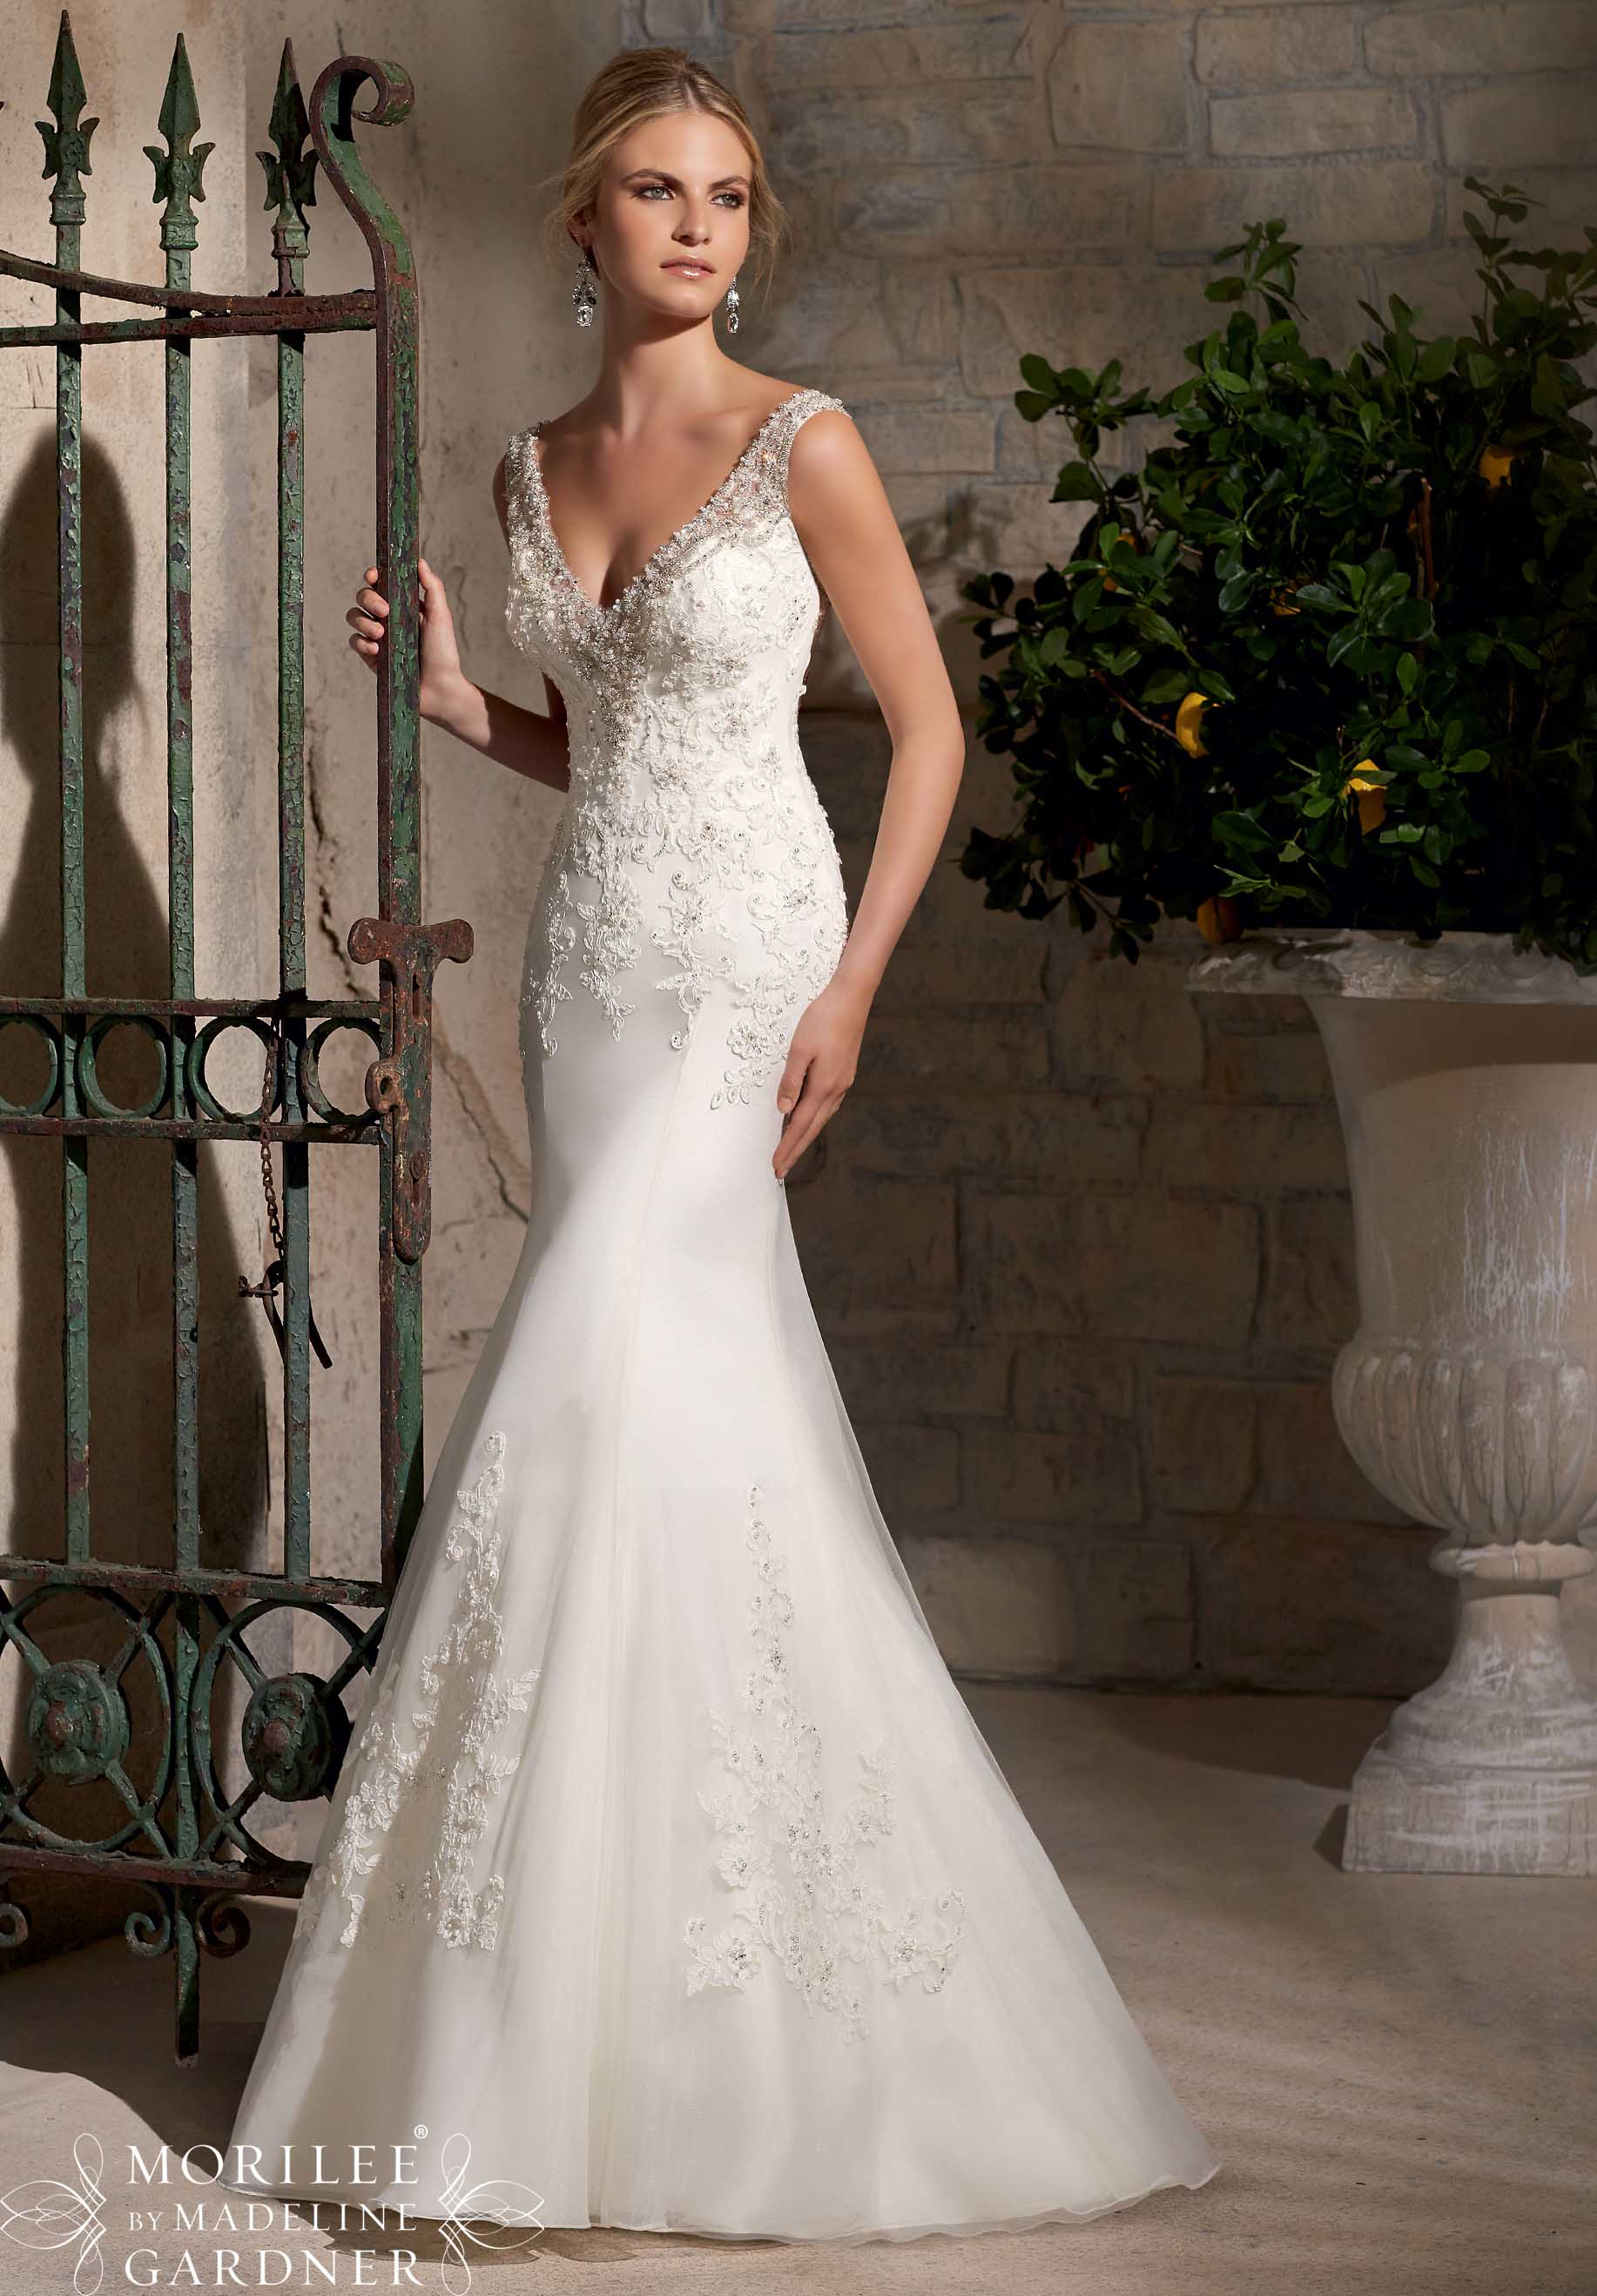 Mori Lee style #2710 beautiful lace bridal gown.